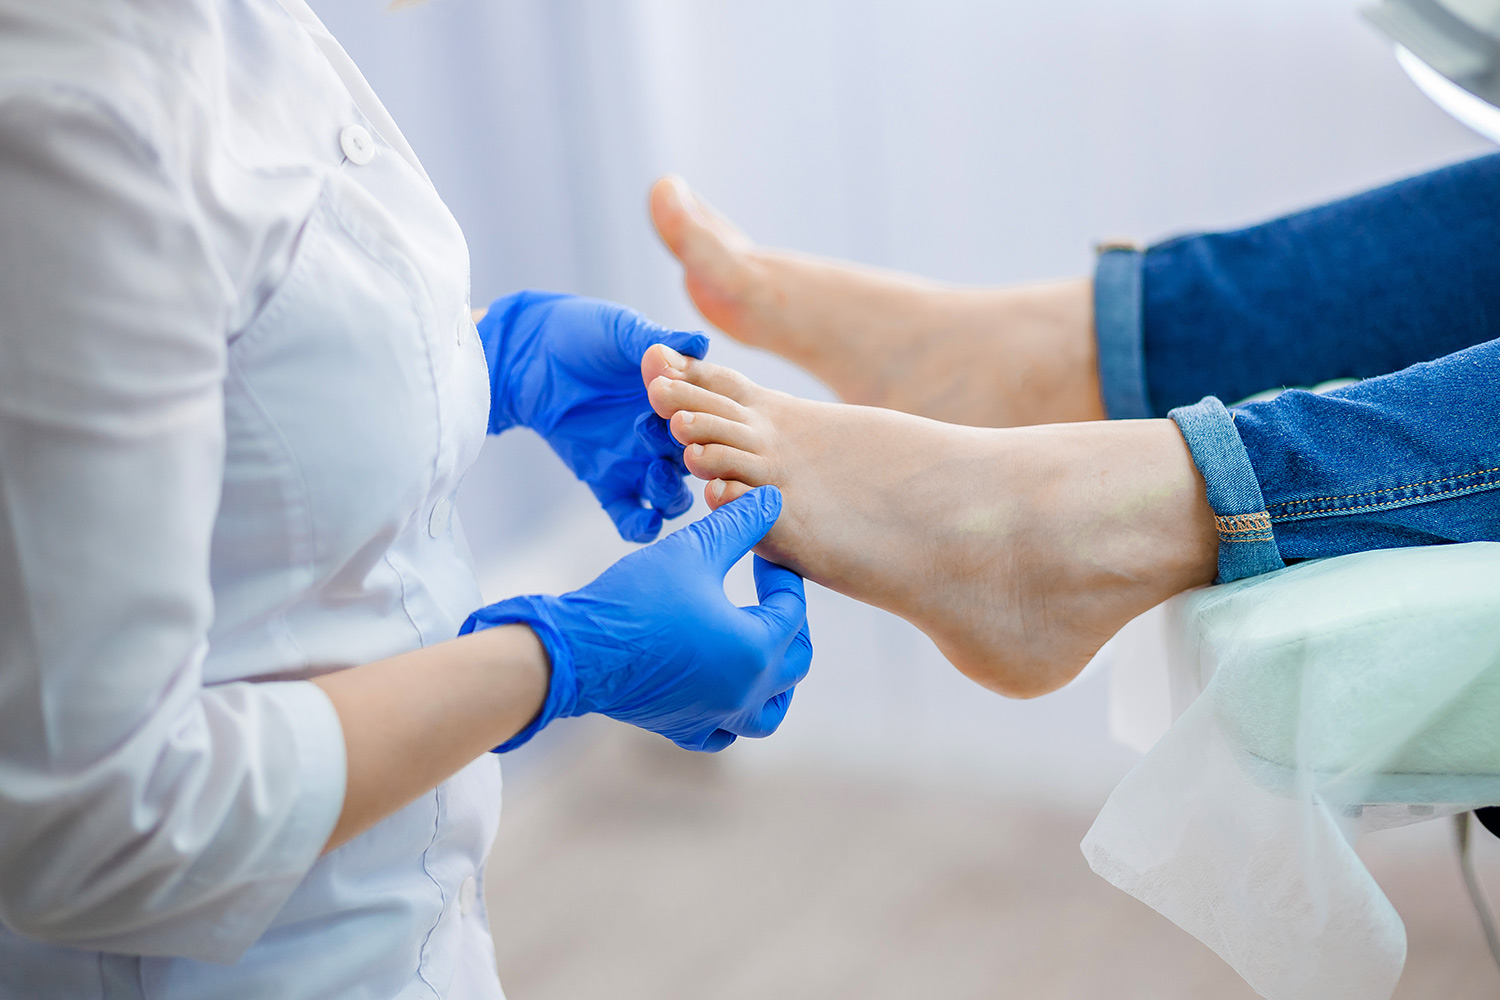 Woman showing her feet to the doctor